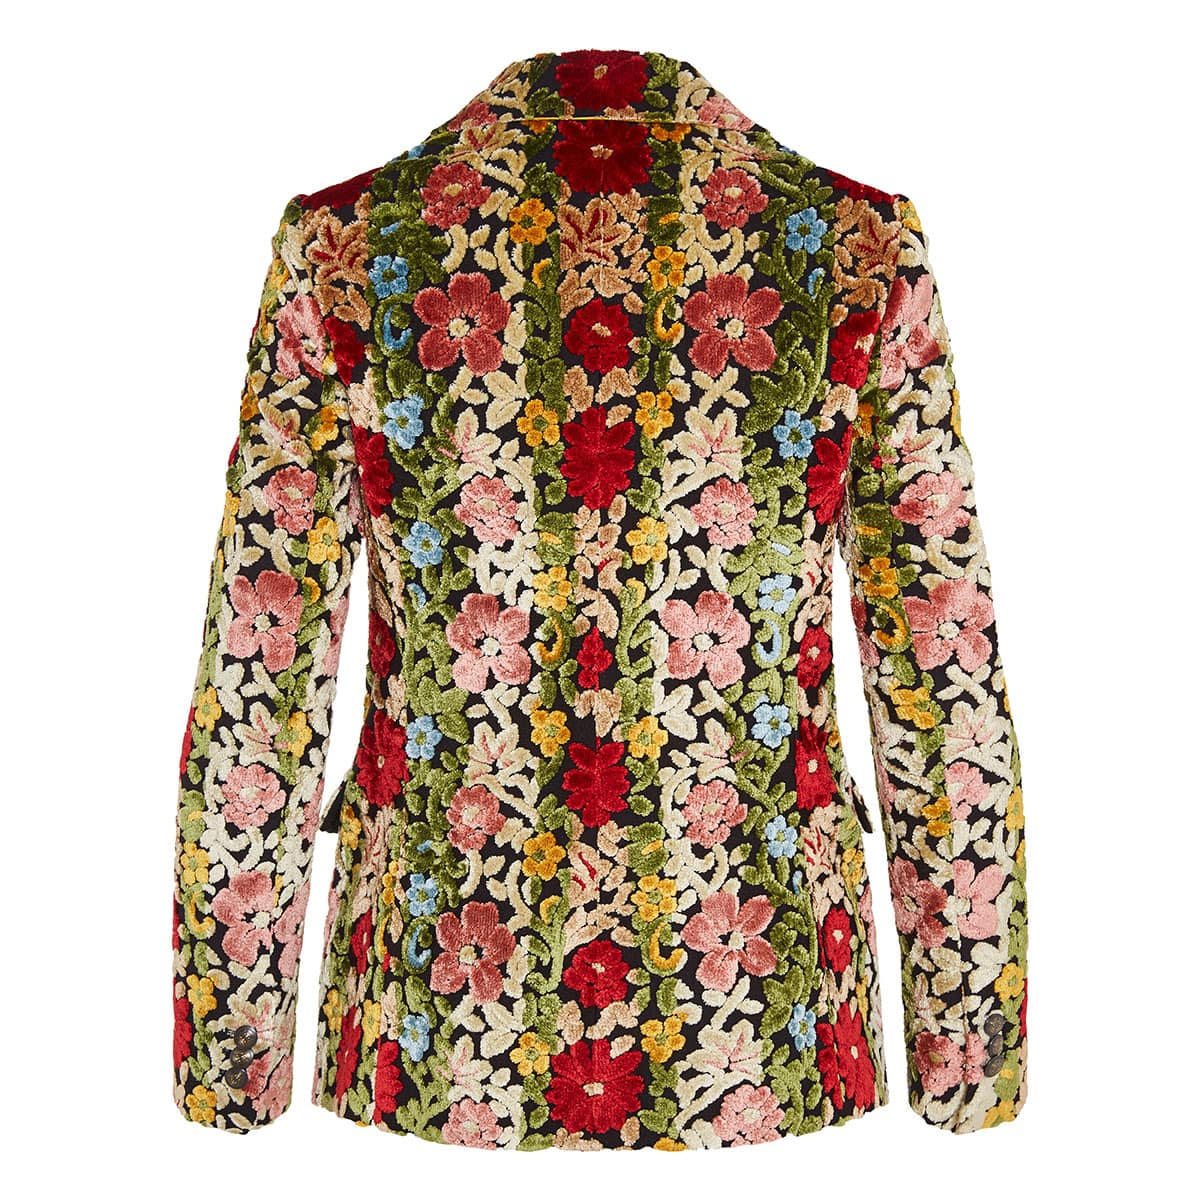 Carpet-embroidered floral blazer